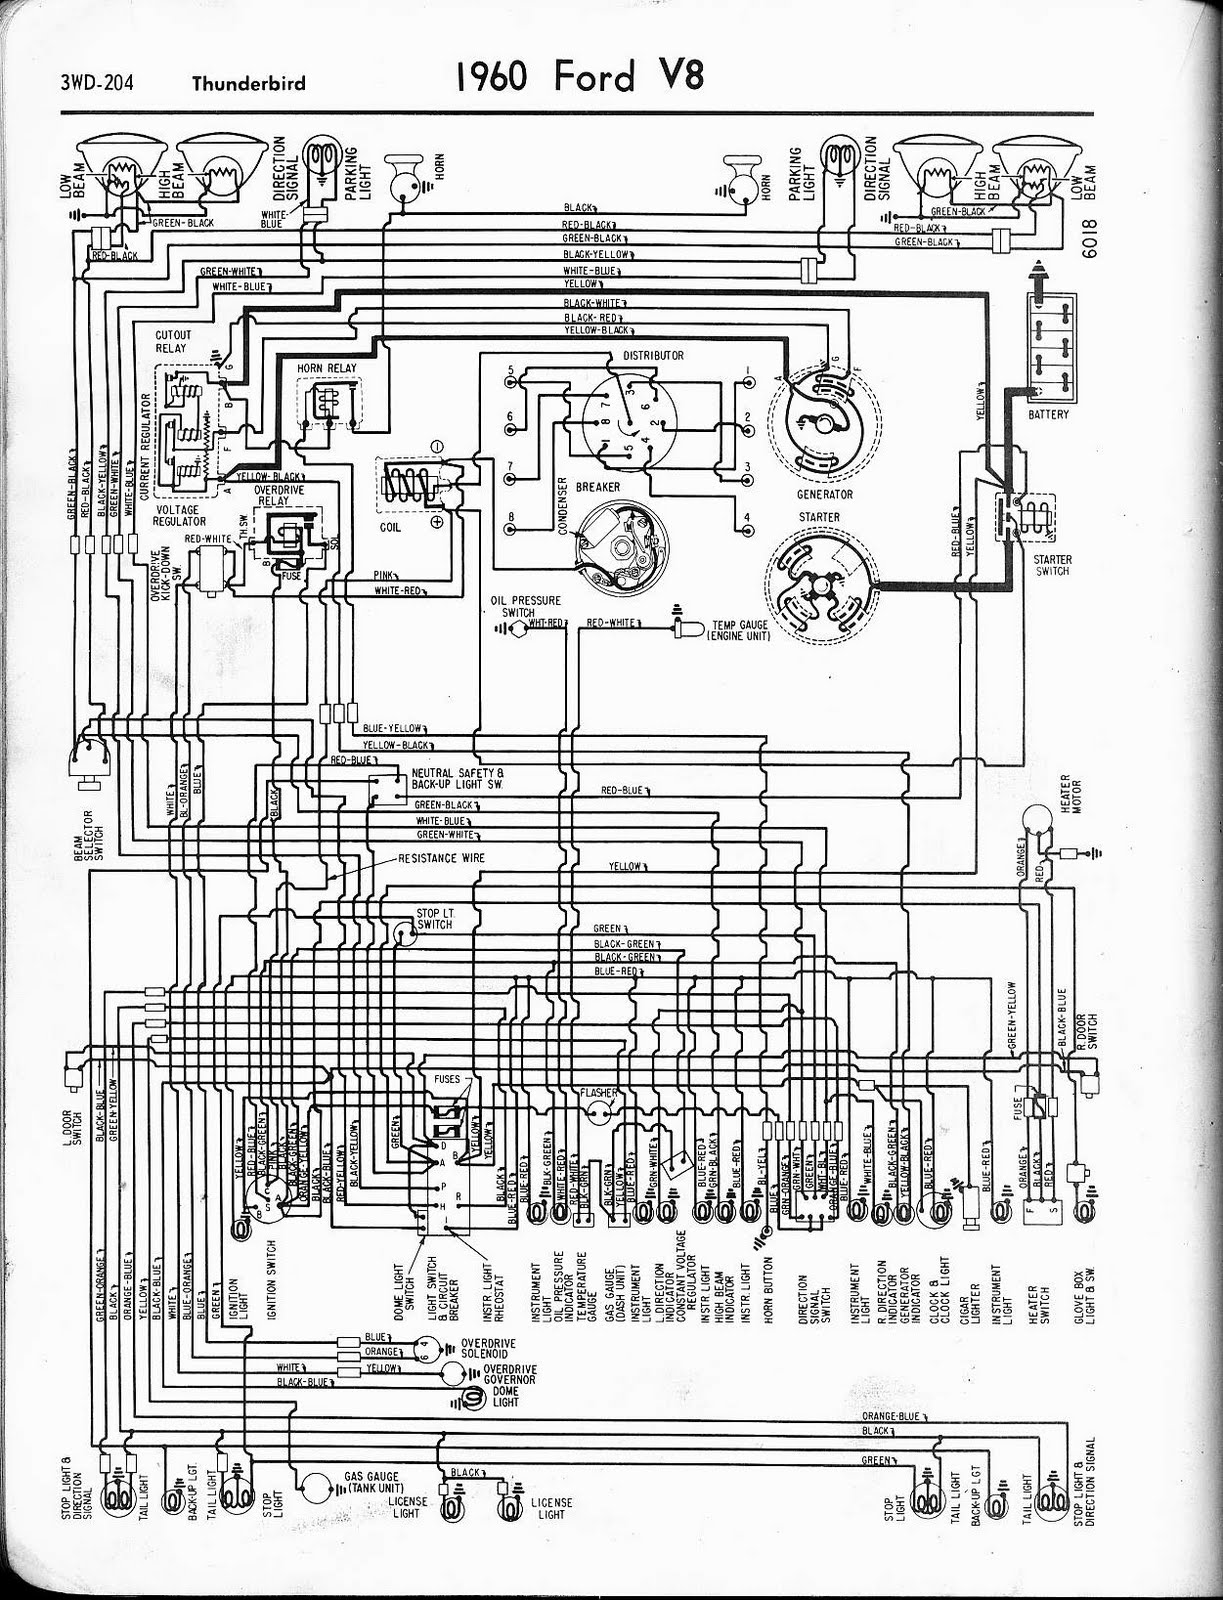 hight resolution of 97 thunderbird wiring diagram wiring diagrams konsult 1997 ford thunderbird wiring diagram